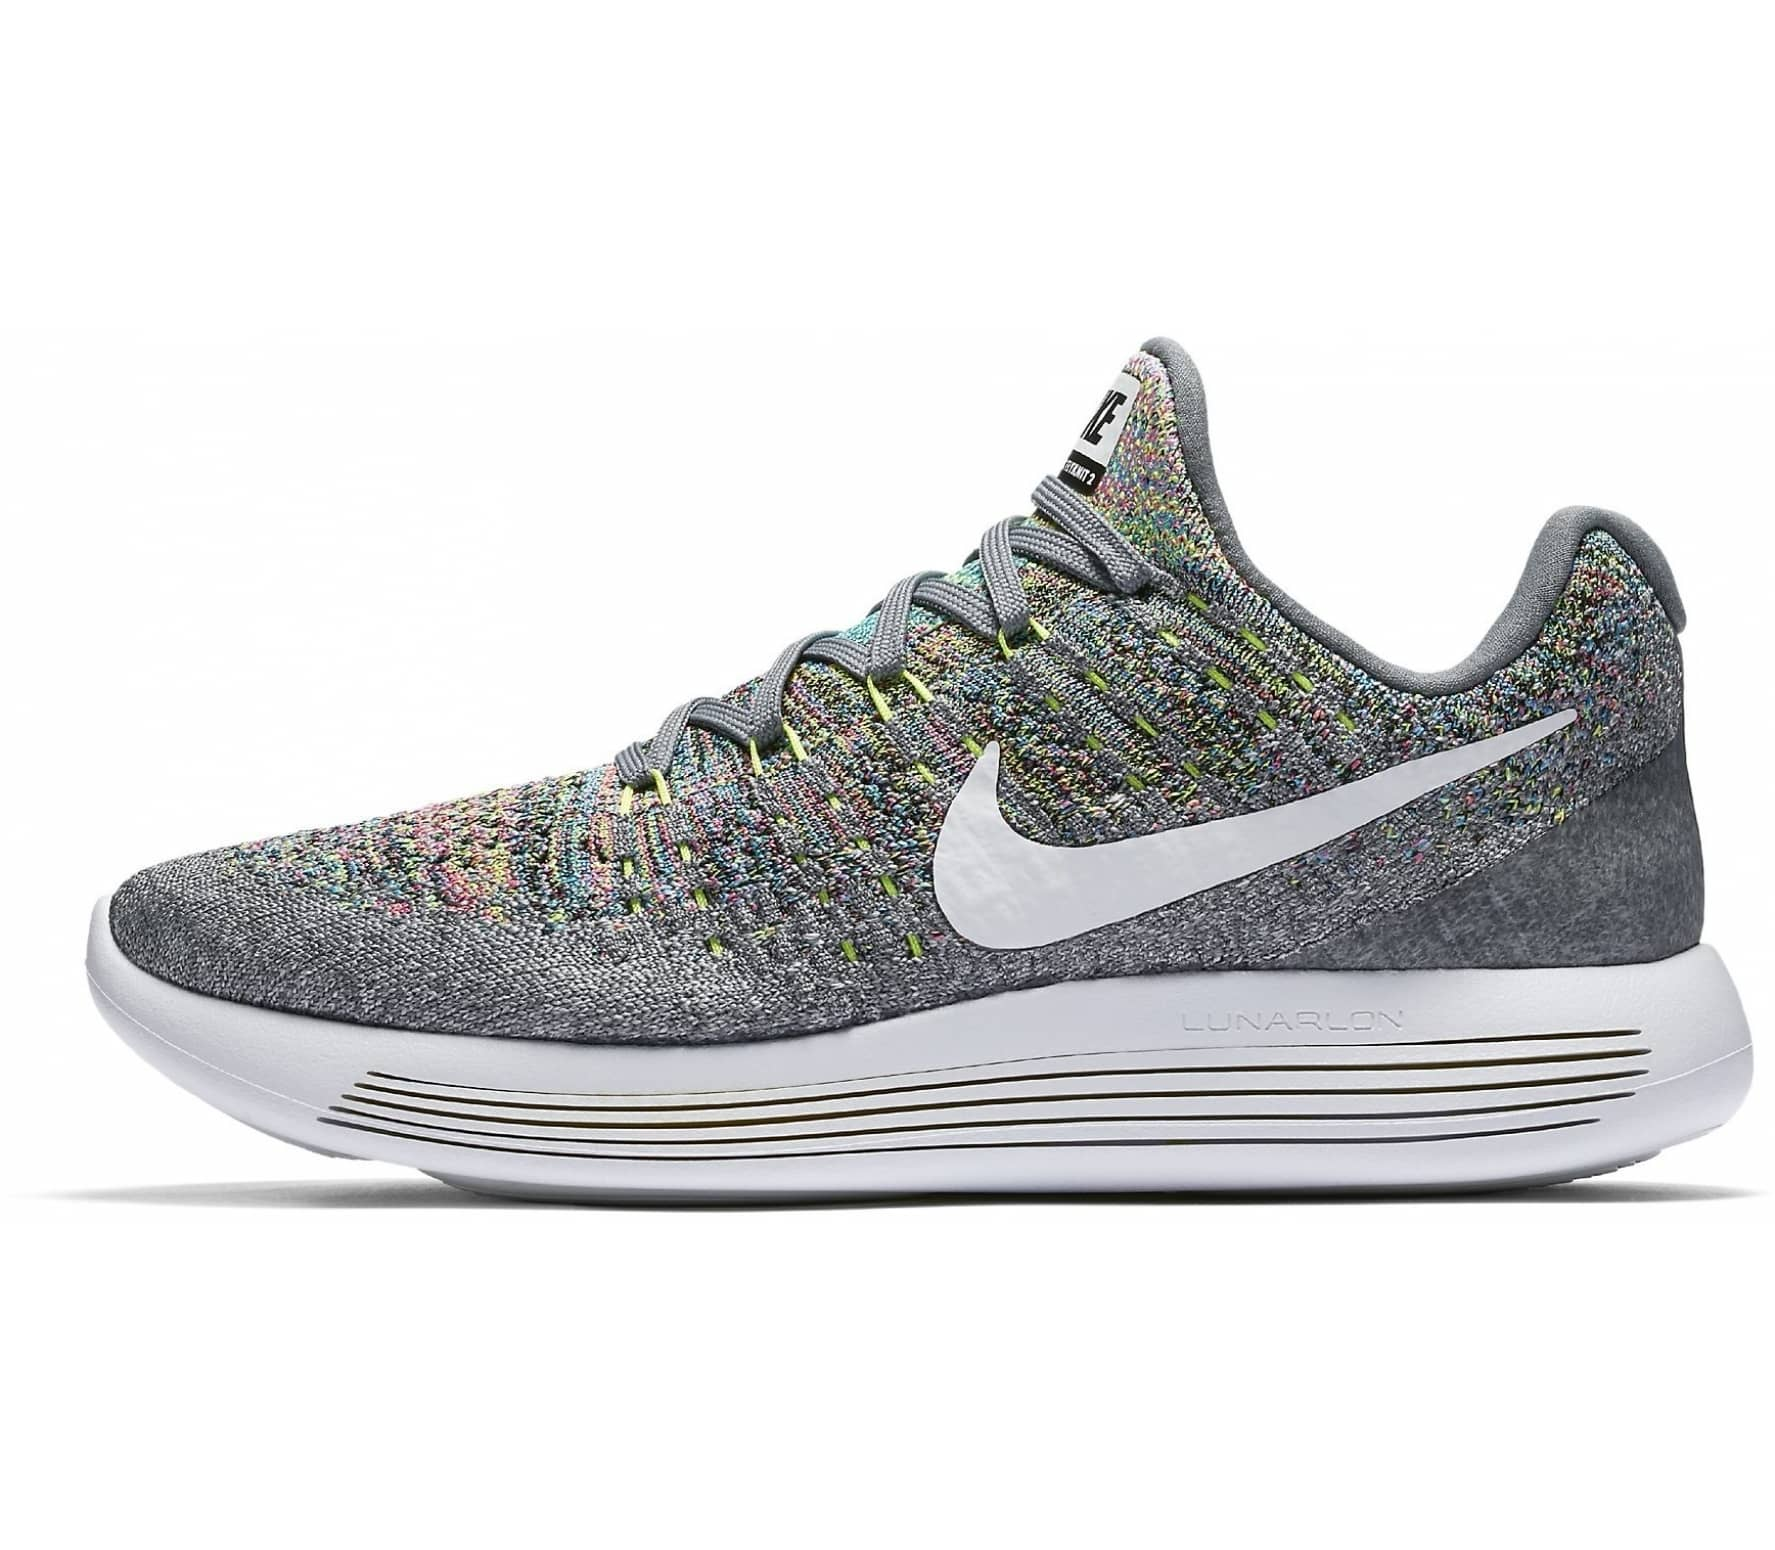 new product 14837 60cc8 ... clearance nike lunarepic low flyknit 2 mujer zapatos para correr gris  amarillo 5cd7e 52b27